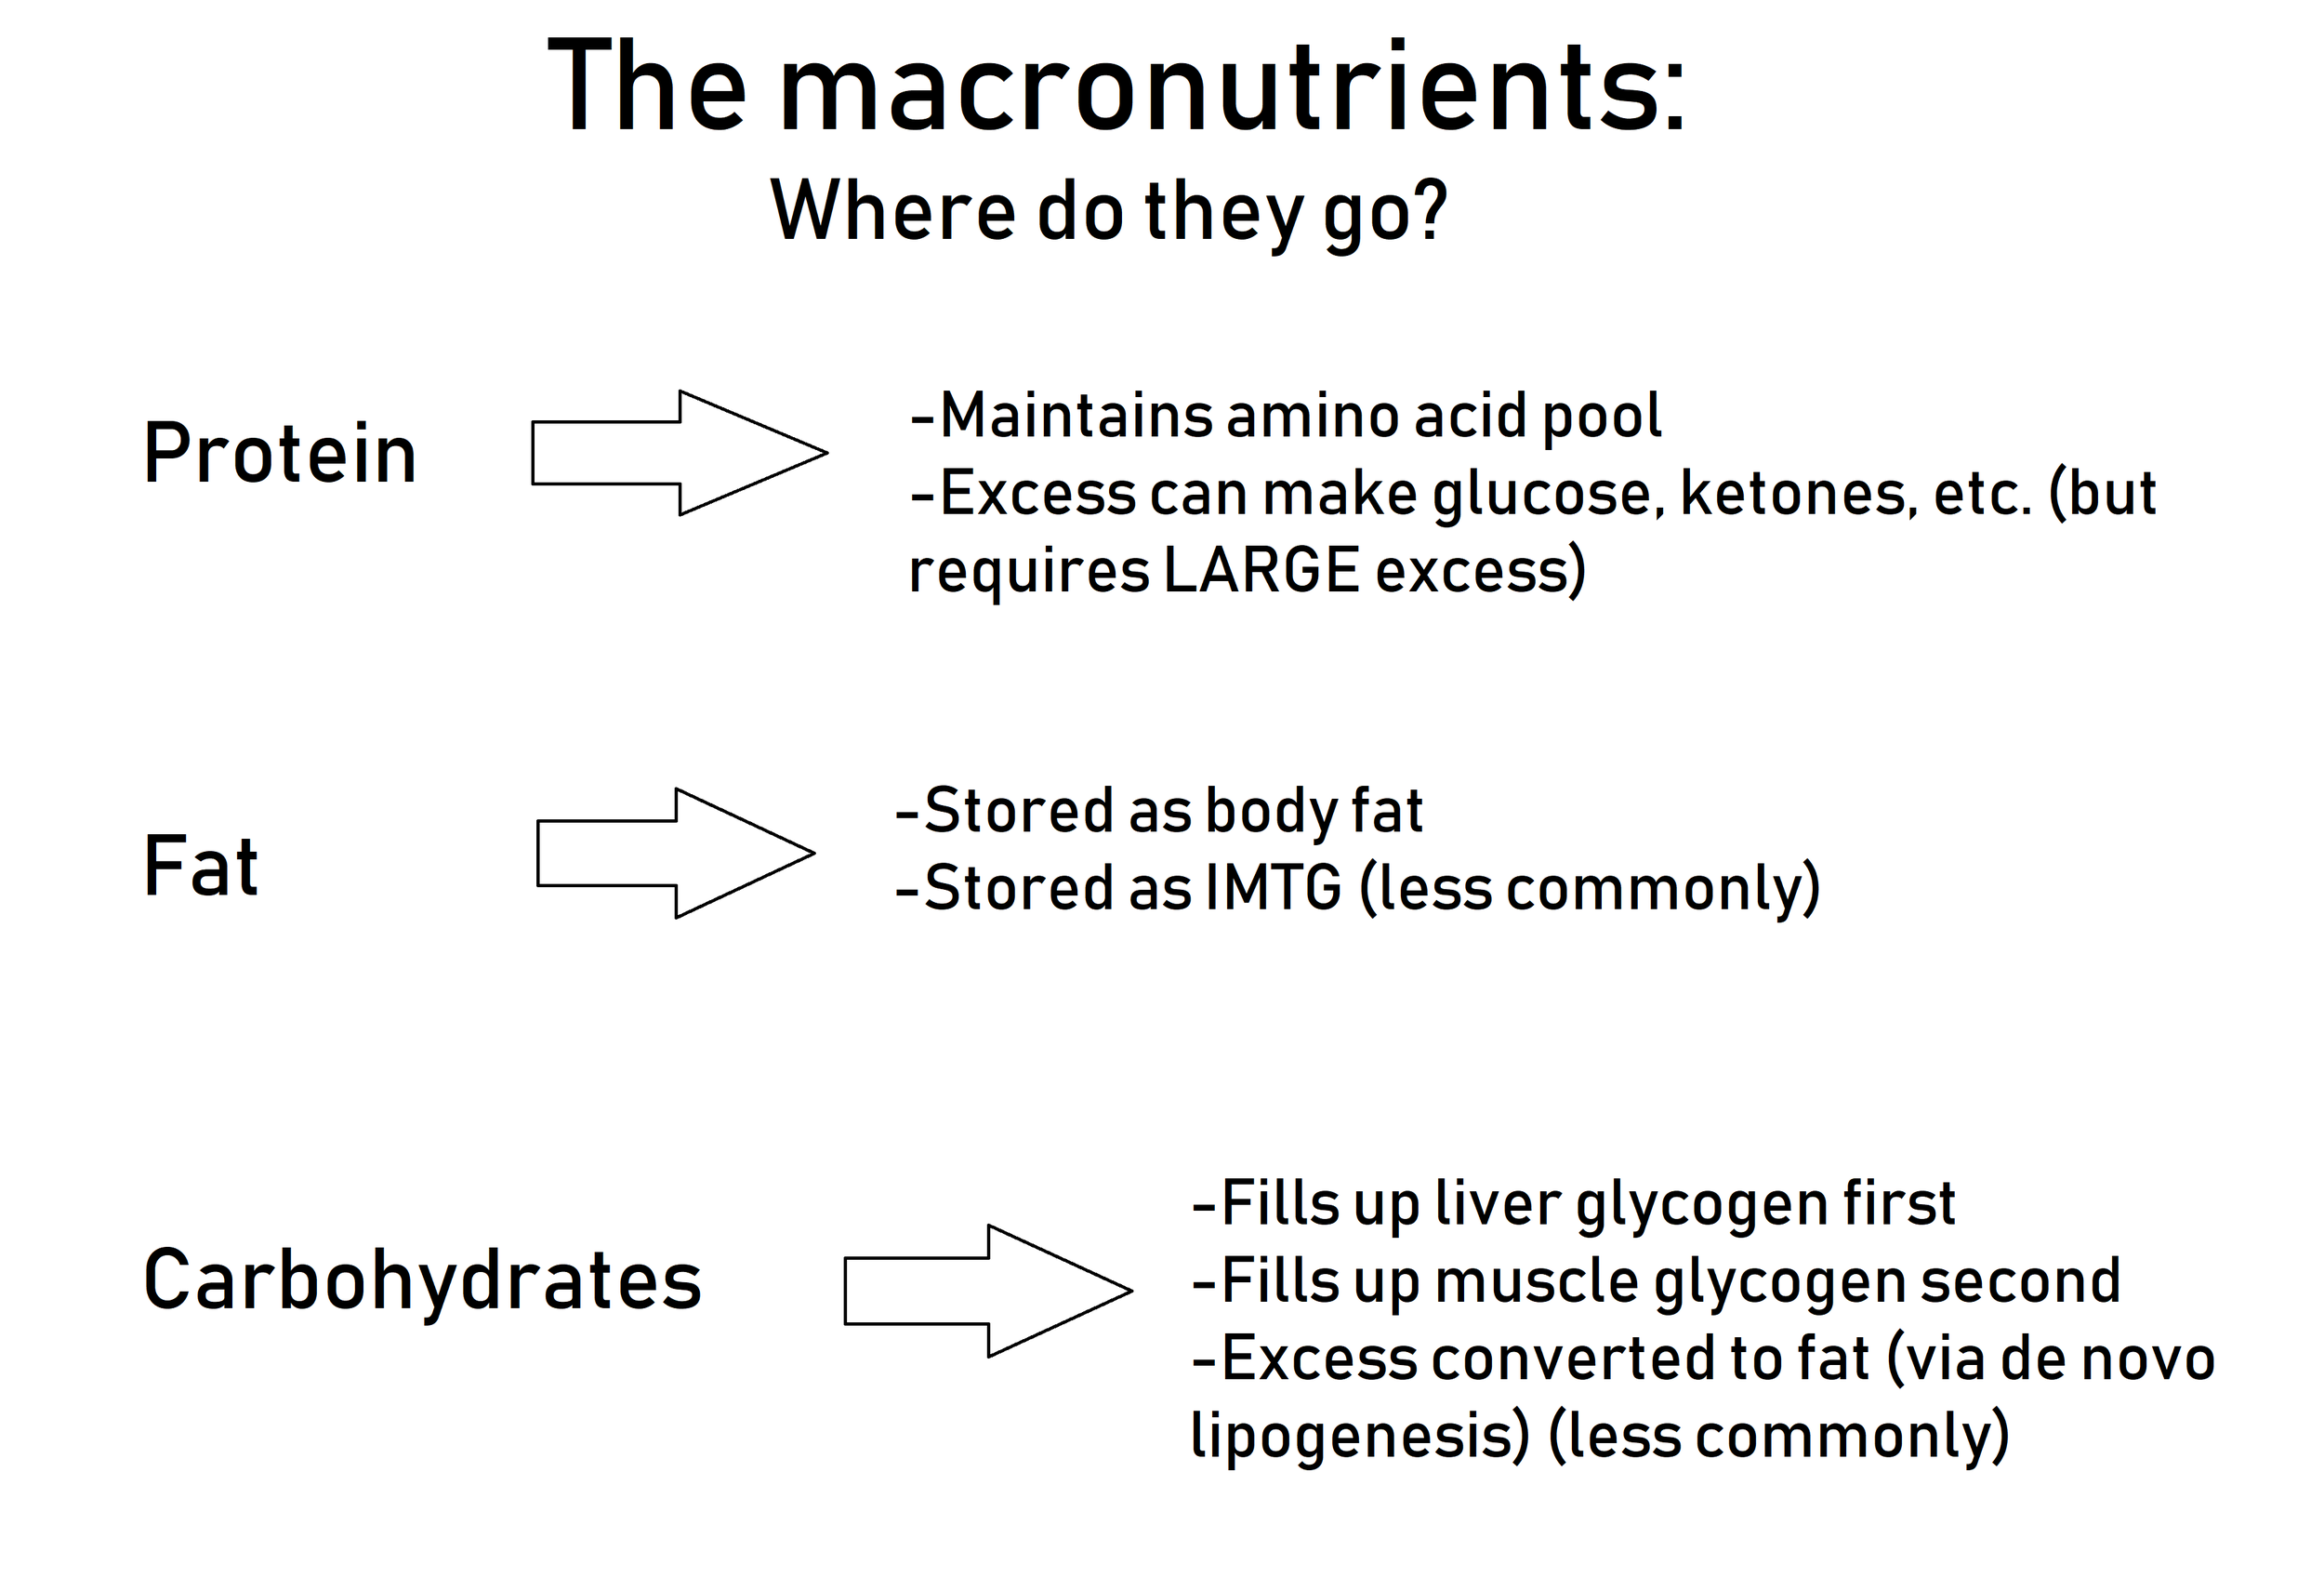 "Where each macronutrient ultimately goes after digestion and absorption.  Each one has some other destinations not listed here, but these are the most pertinent for our purposes.  Not listed here is the fourth macronutrient, alcohol, which does not directly go into any ""storage compartment in the body.""  Rather, the body holds off on dealing with any other macronutrient and preferentially metabolizes alcohol once it has been ingested.  Alcohol bypasses normal metabolic processes and is sent straight into the bloodstream."